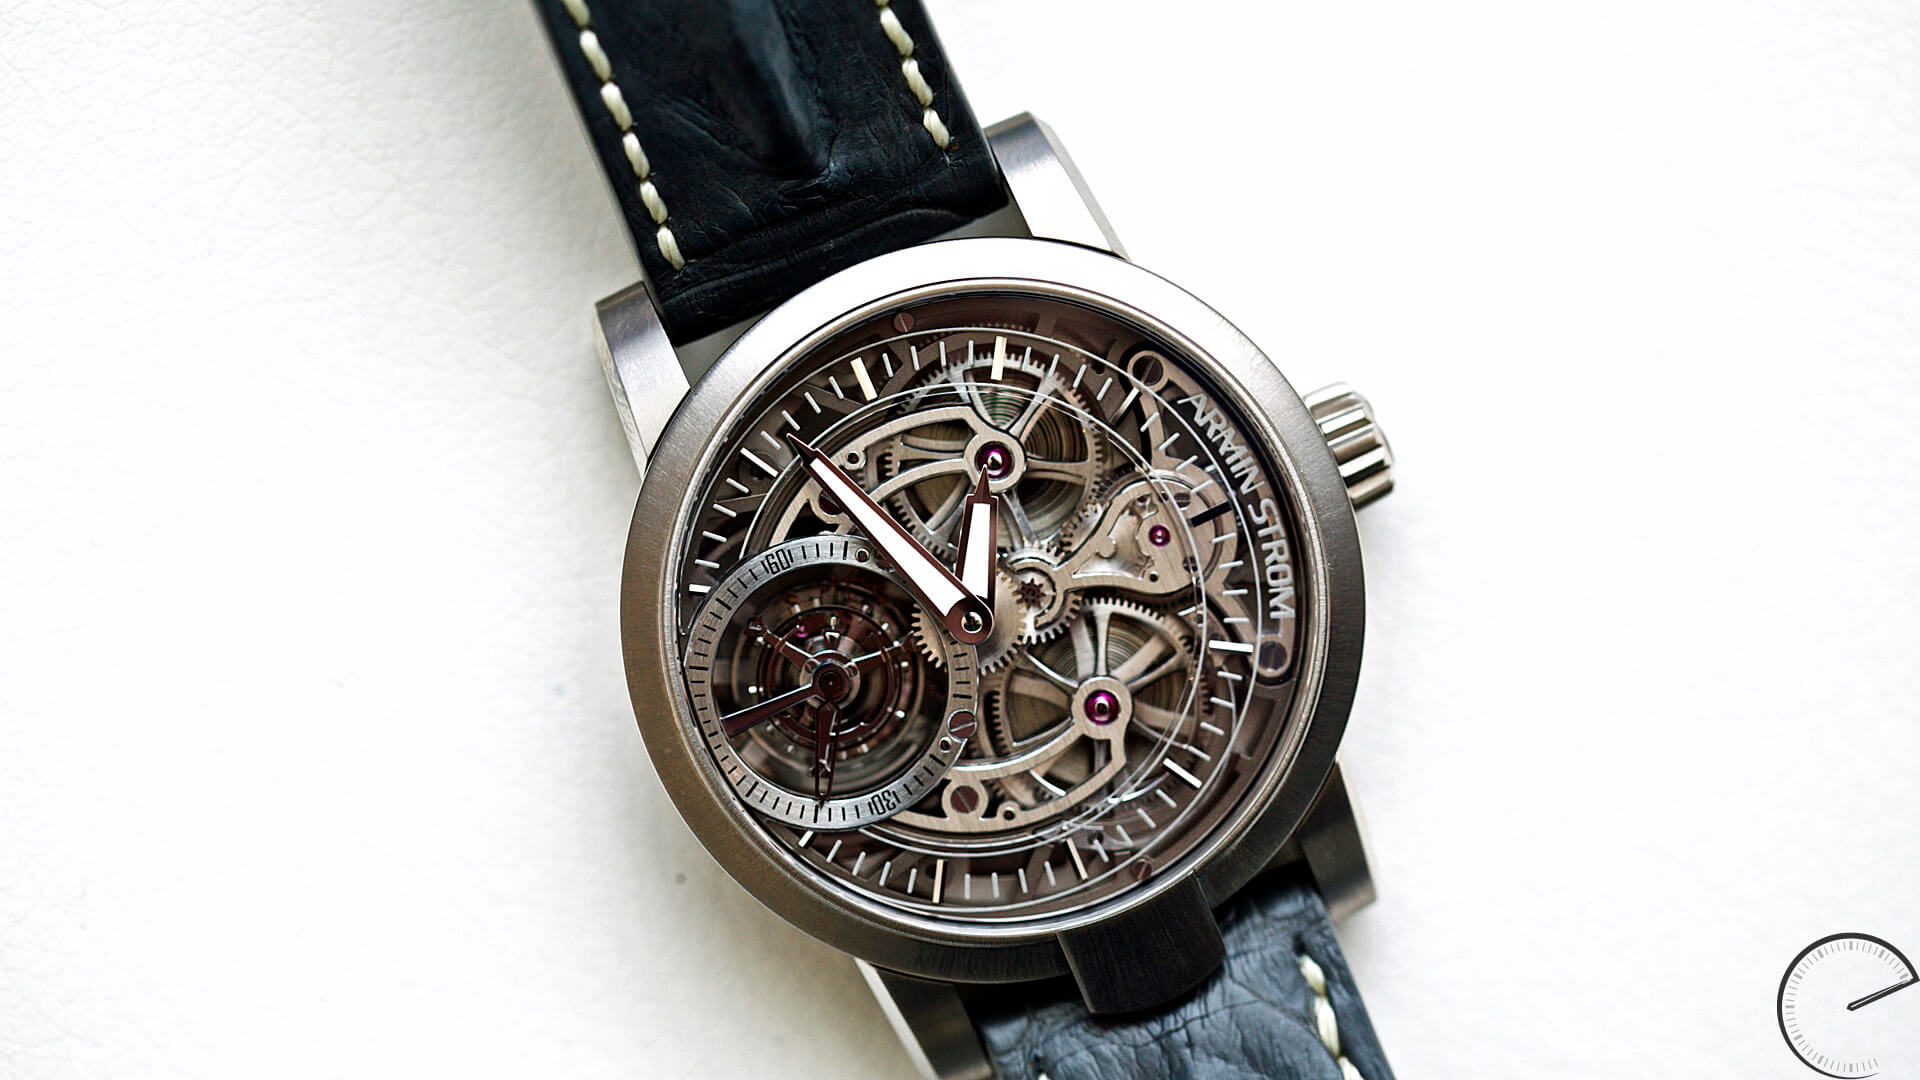 Armin_Strom_Tourbillon_Skeleton_Air_case - - ESCAPEMENT magazine - watch reviews for purists by Angus Davies